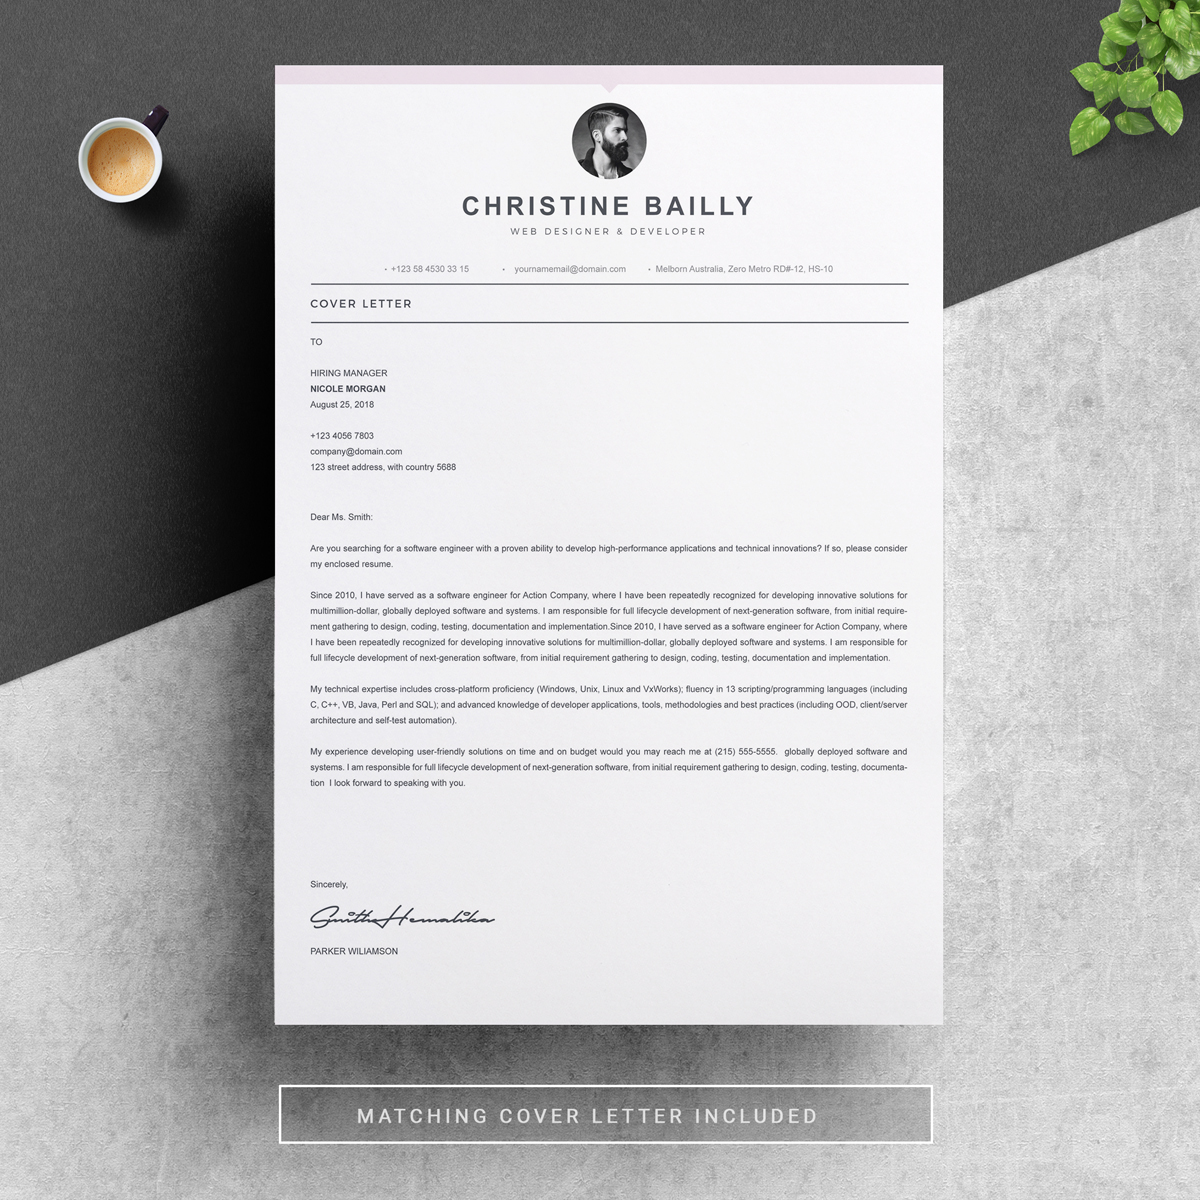 christine bailly resume template  78493